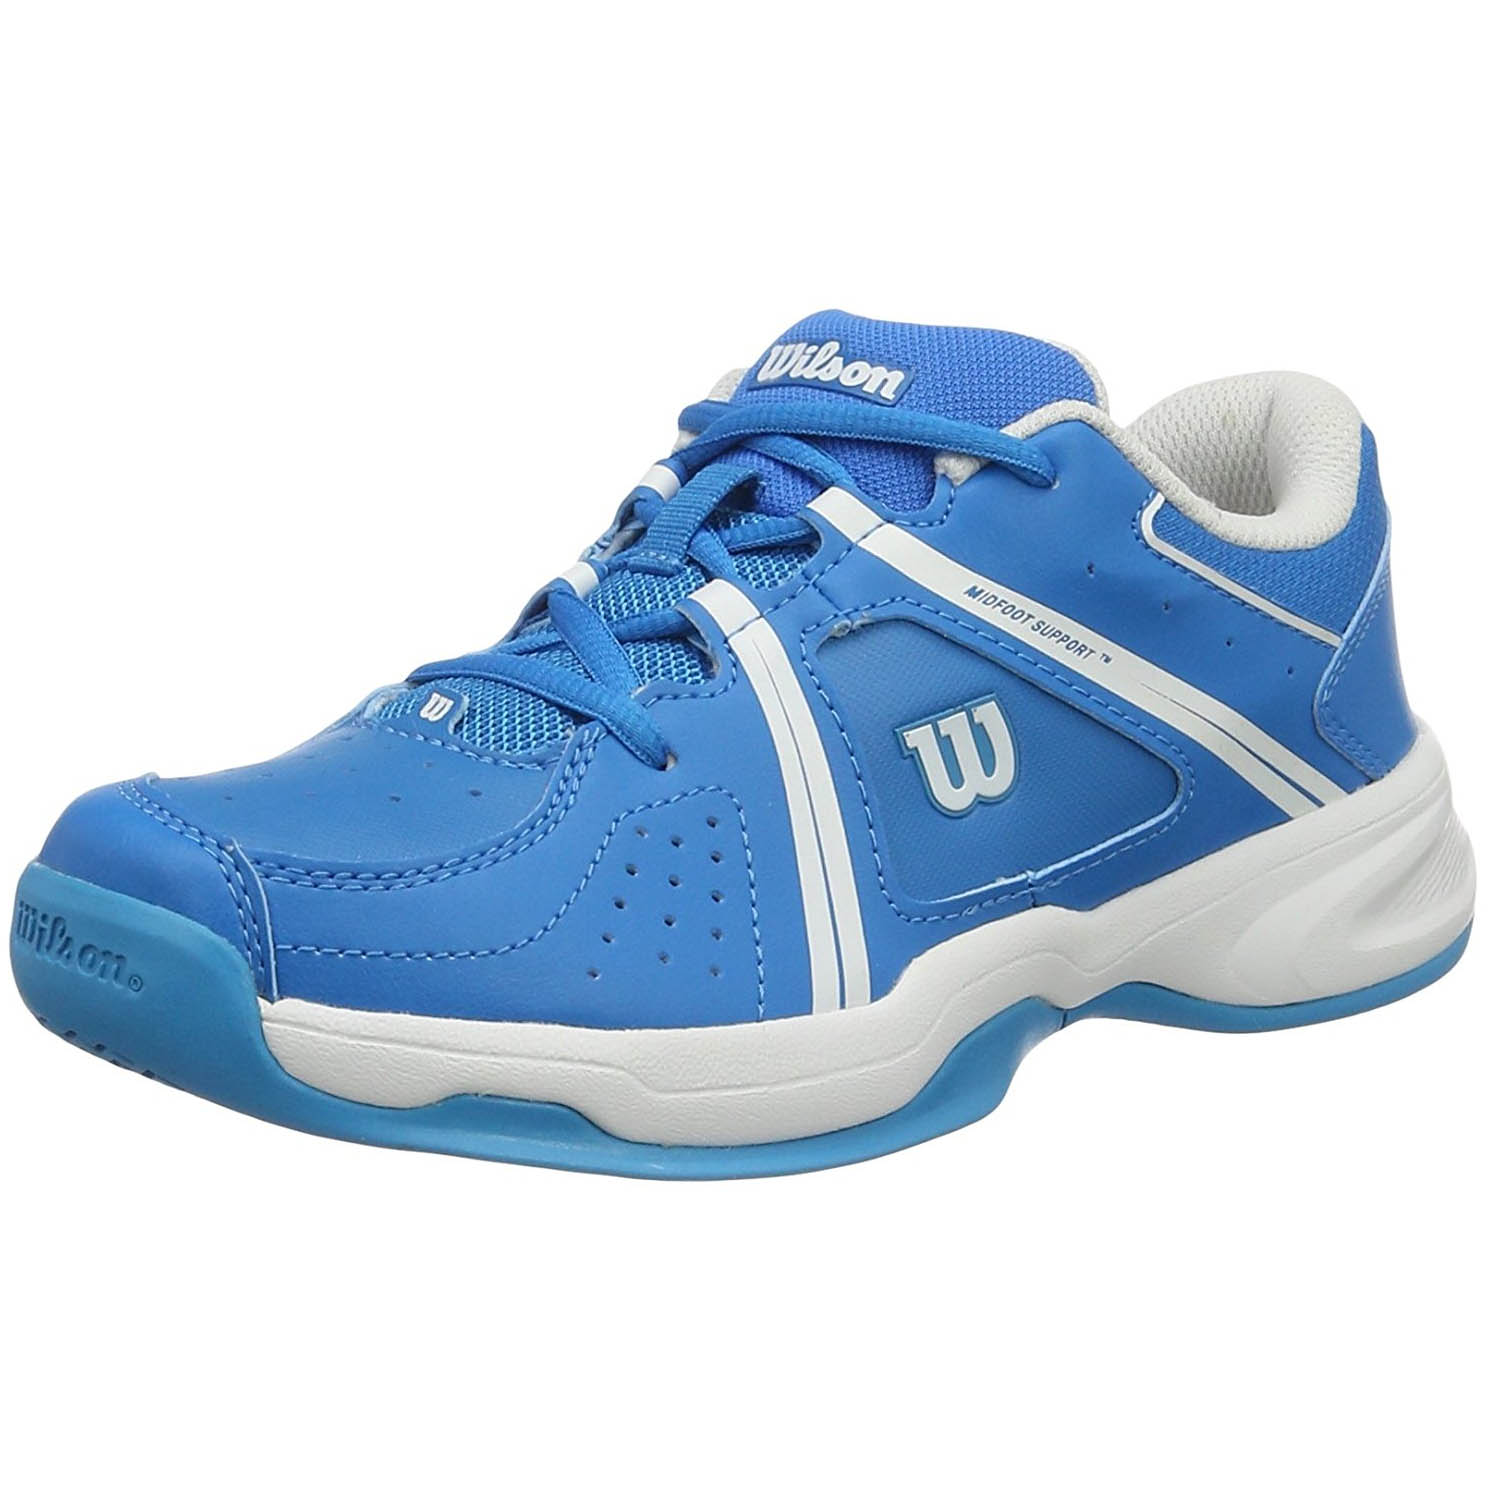 best court trainers prices in tennis